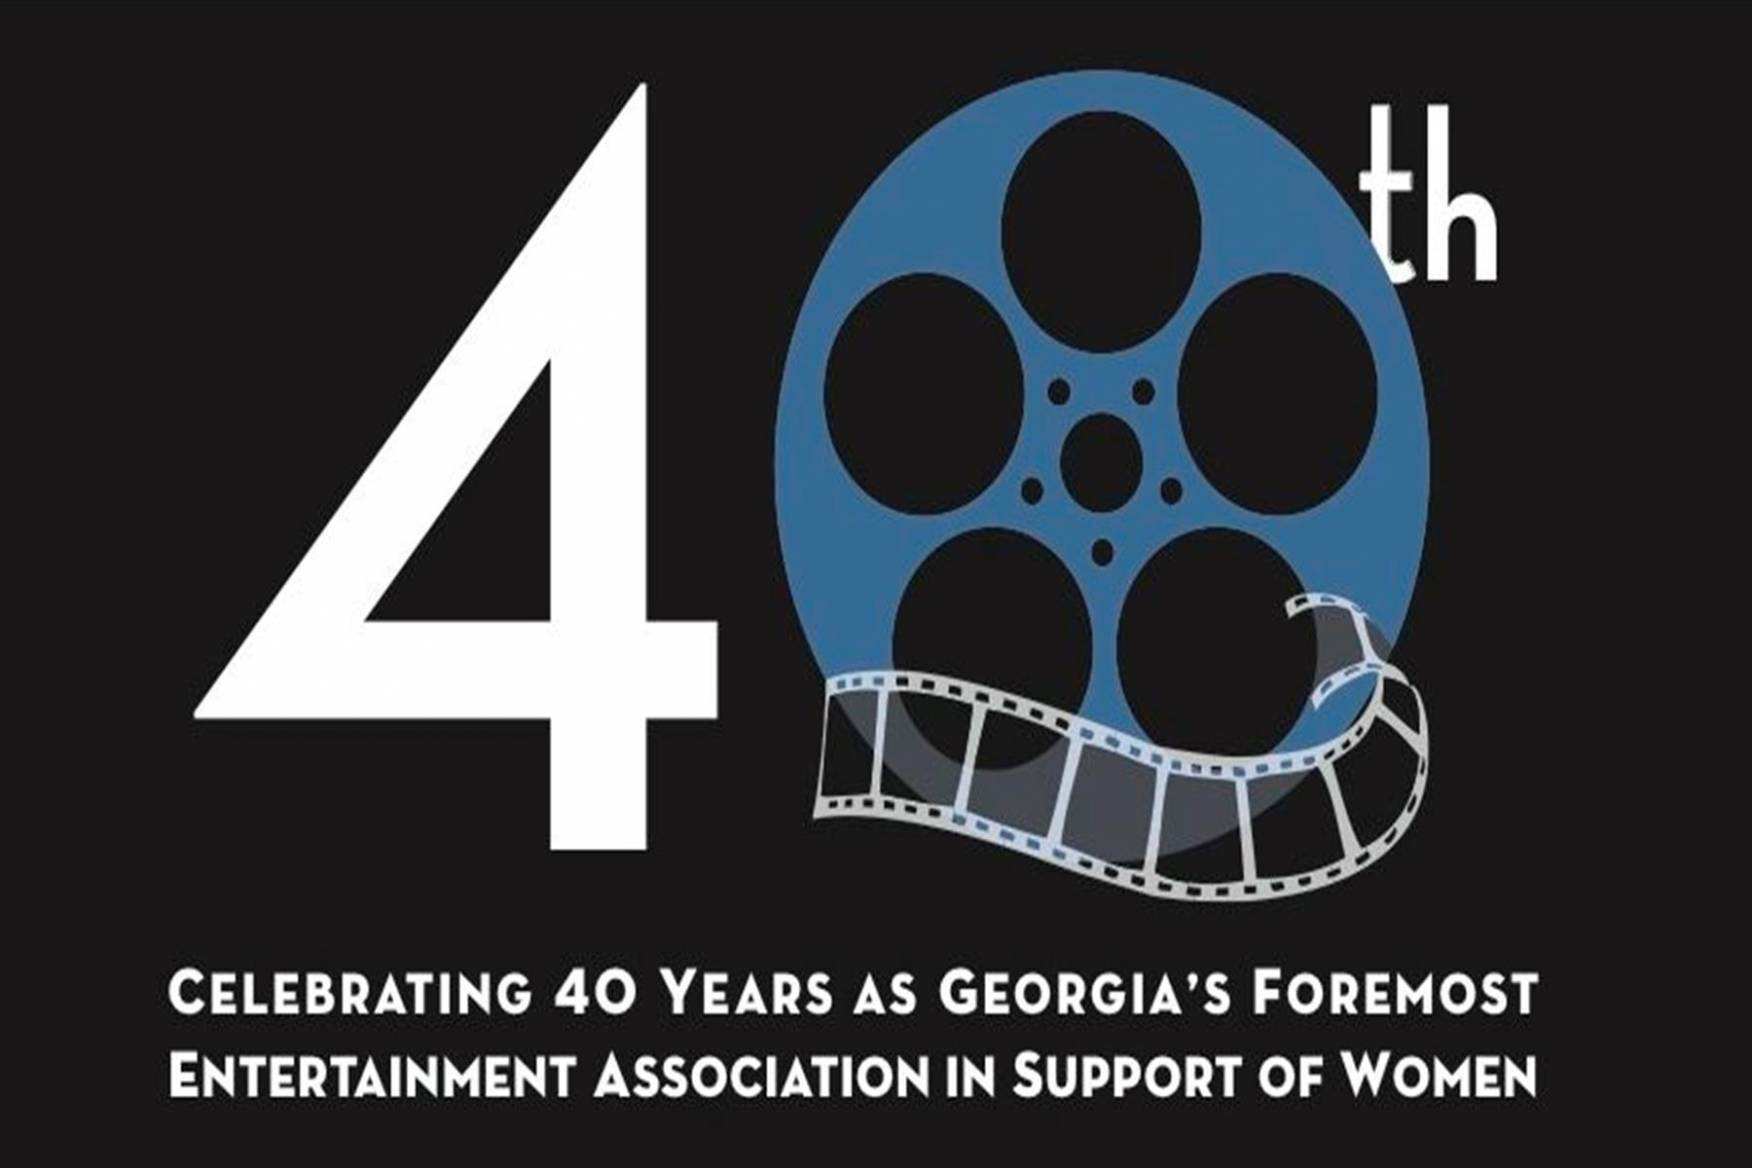 WIFTA hosts its 40th anniversary celebration and fundraiser Nov. 8, 2014